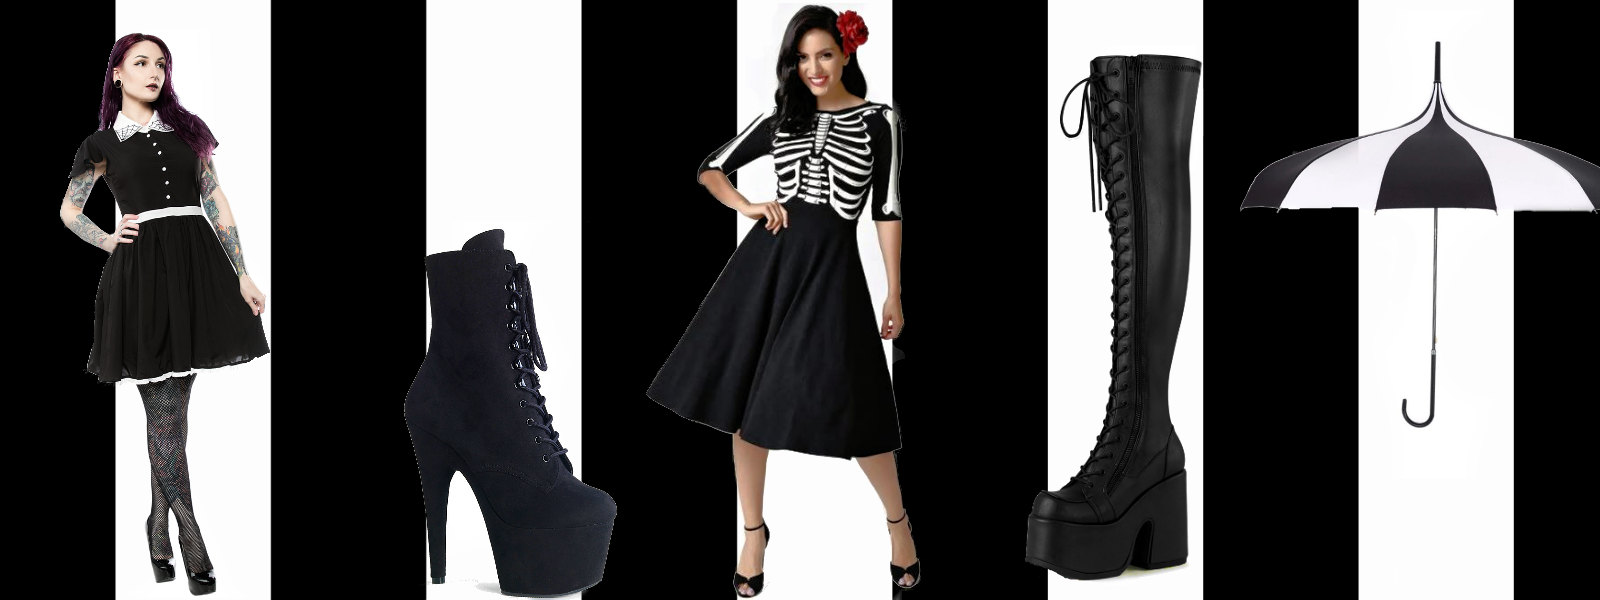 new styles of gothic clothing